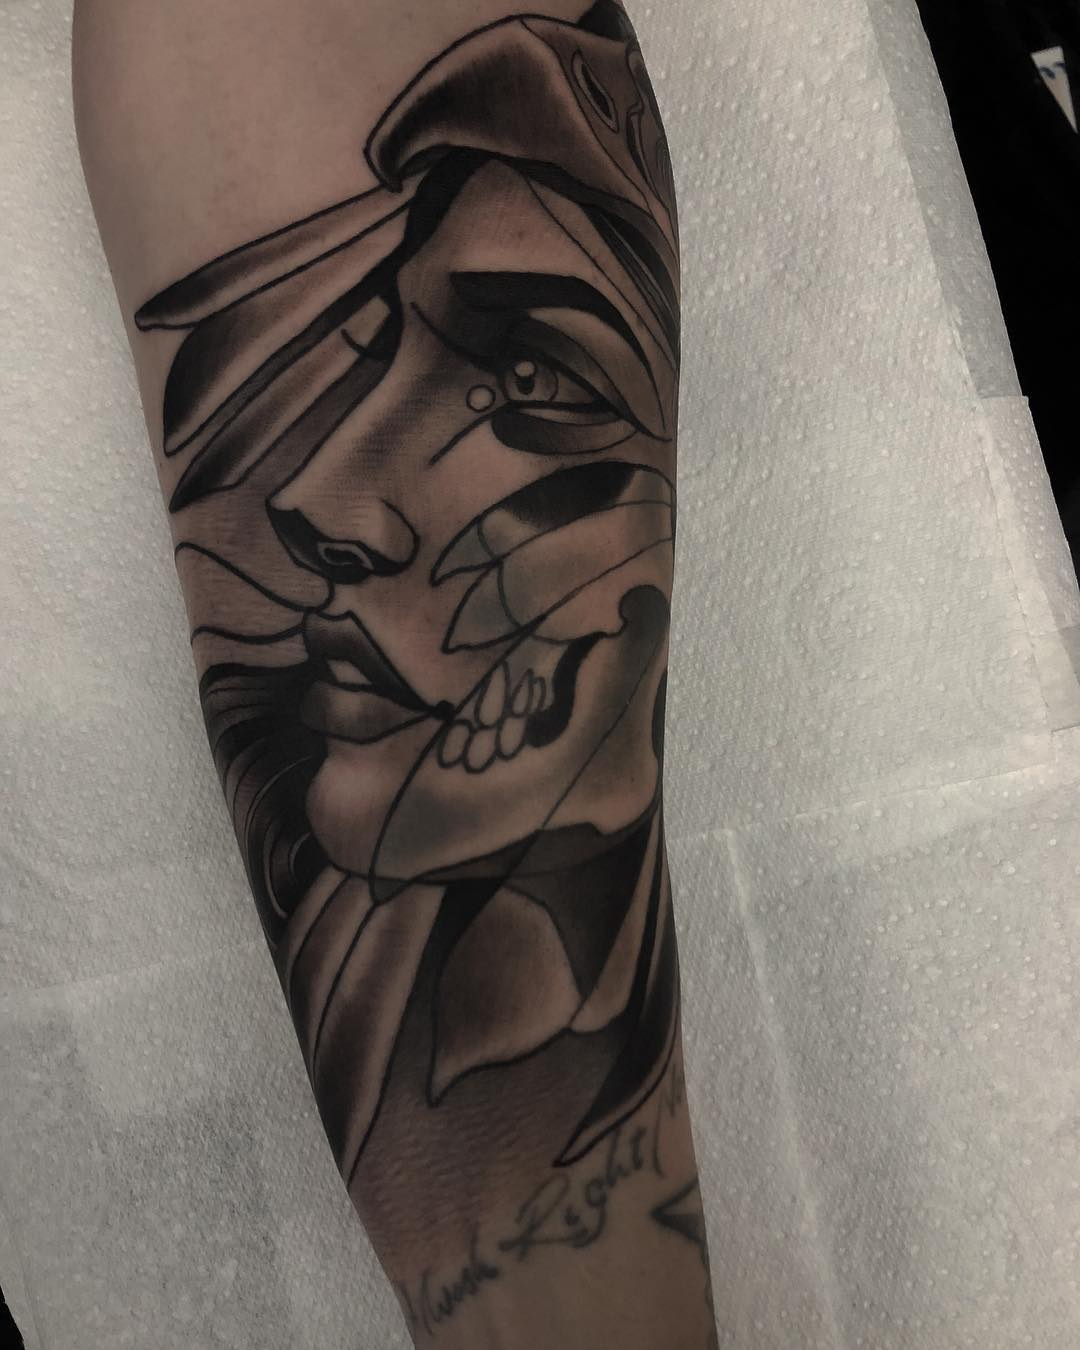 blake byrnes tattoo artist london 03